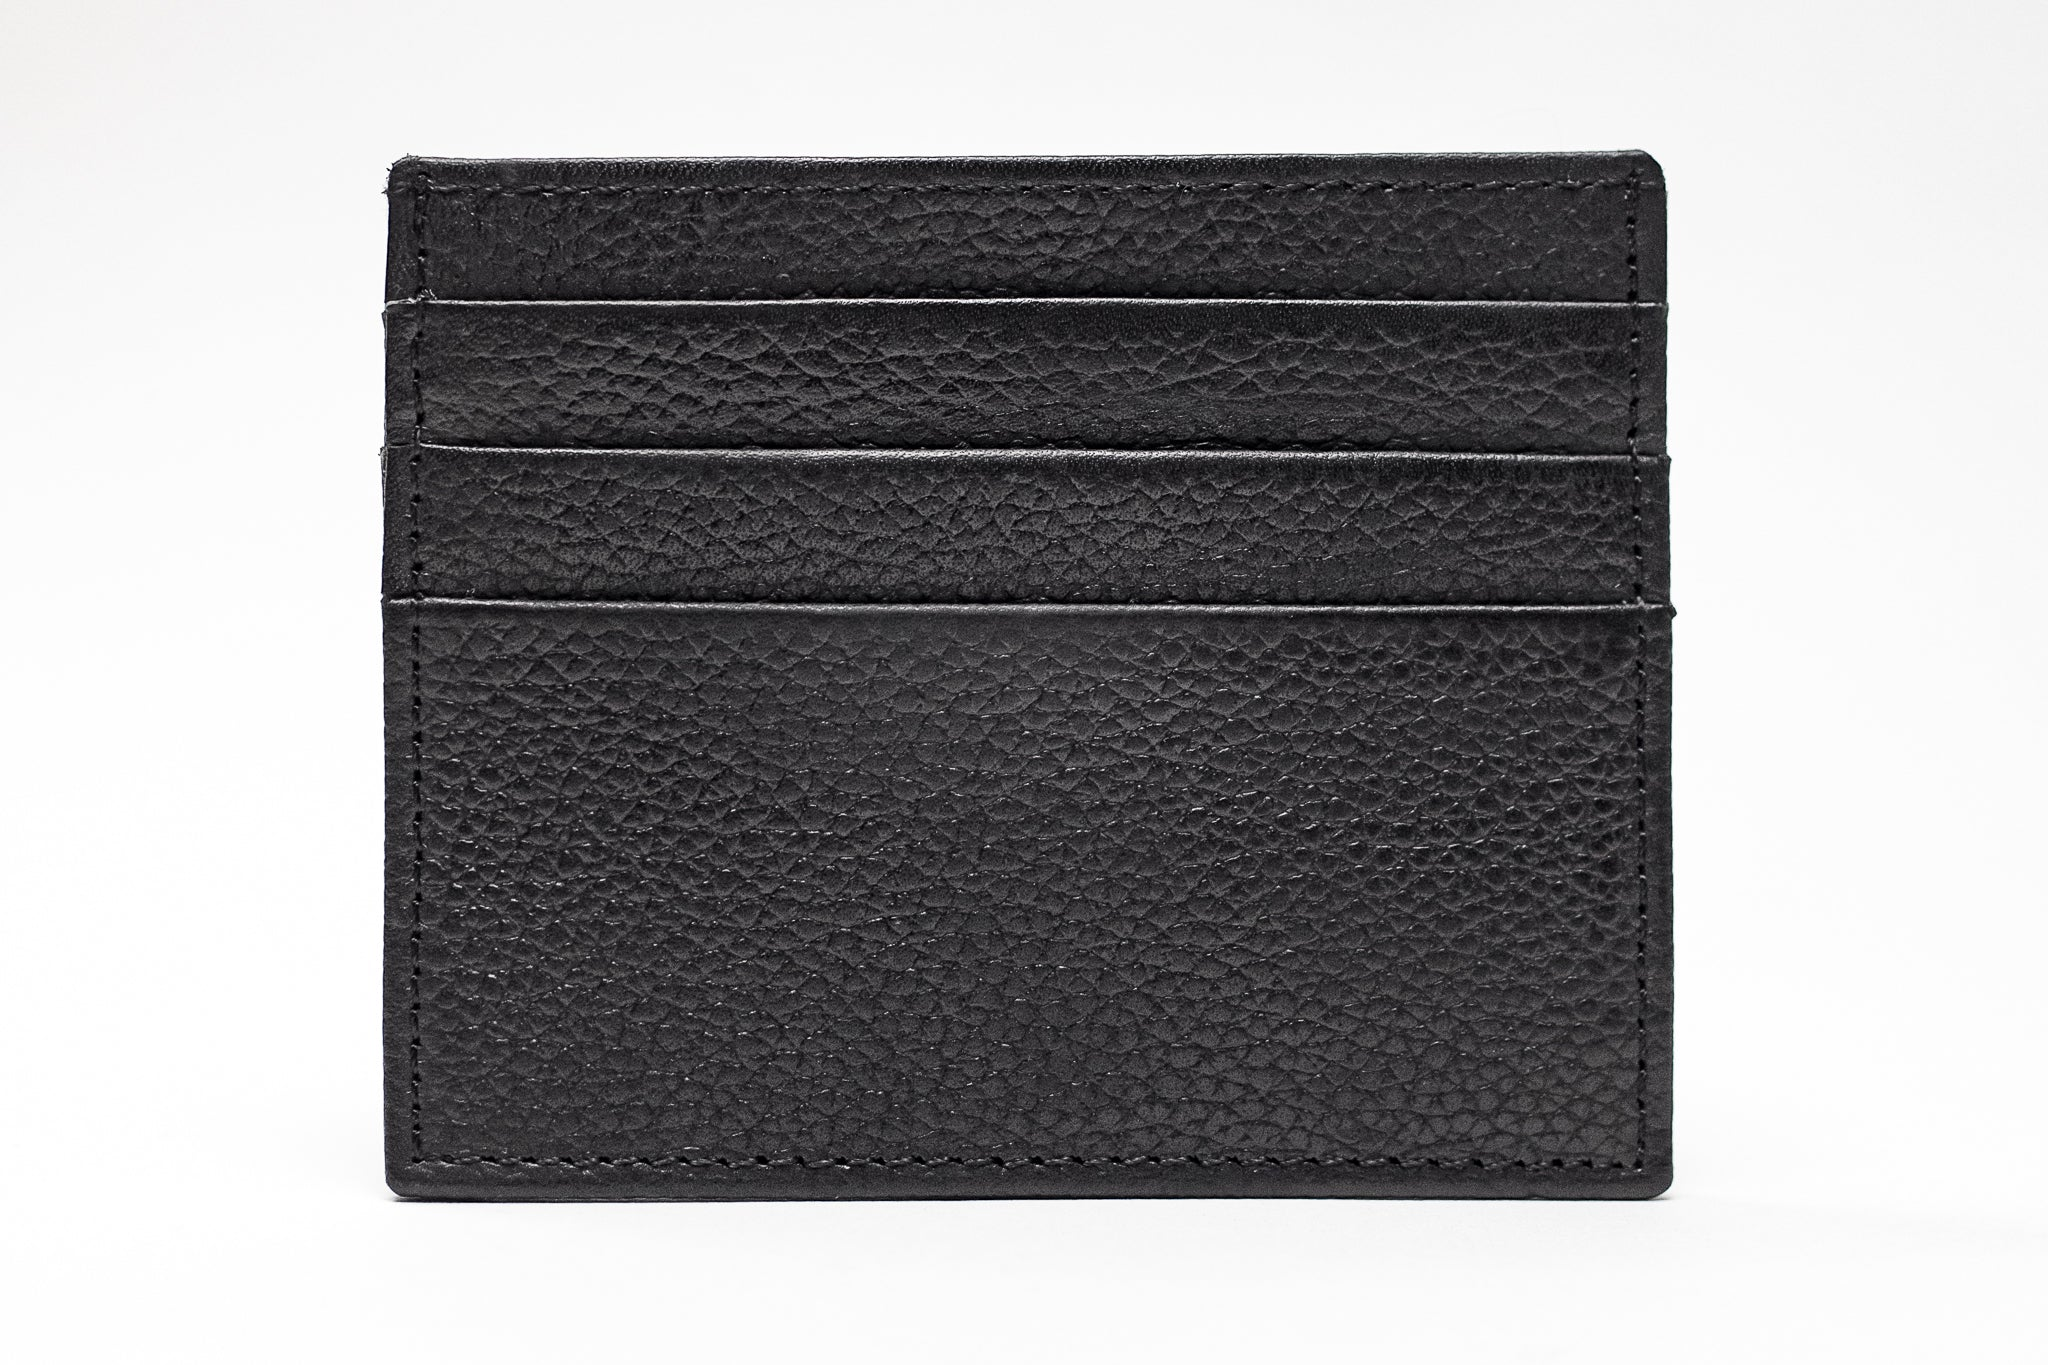 LEATHER SLOT WALLET